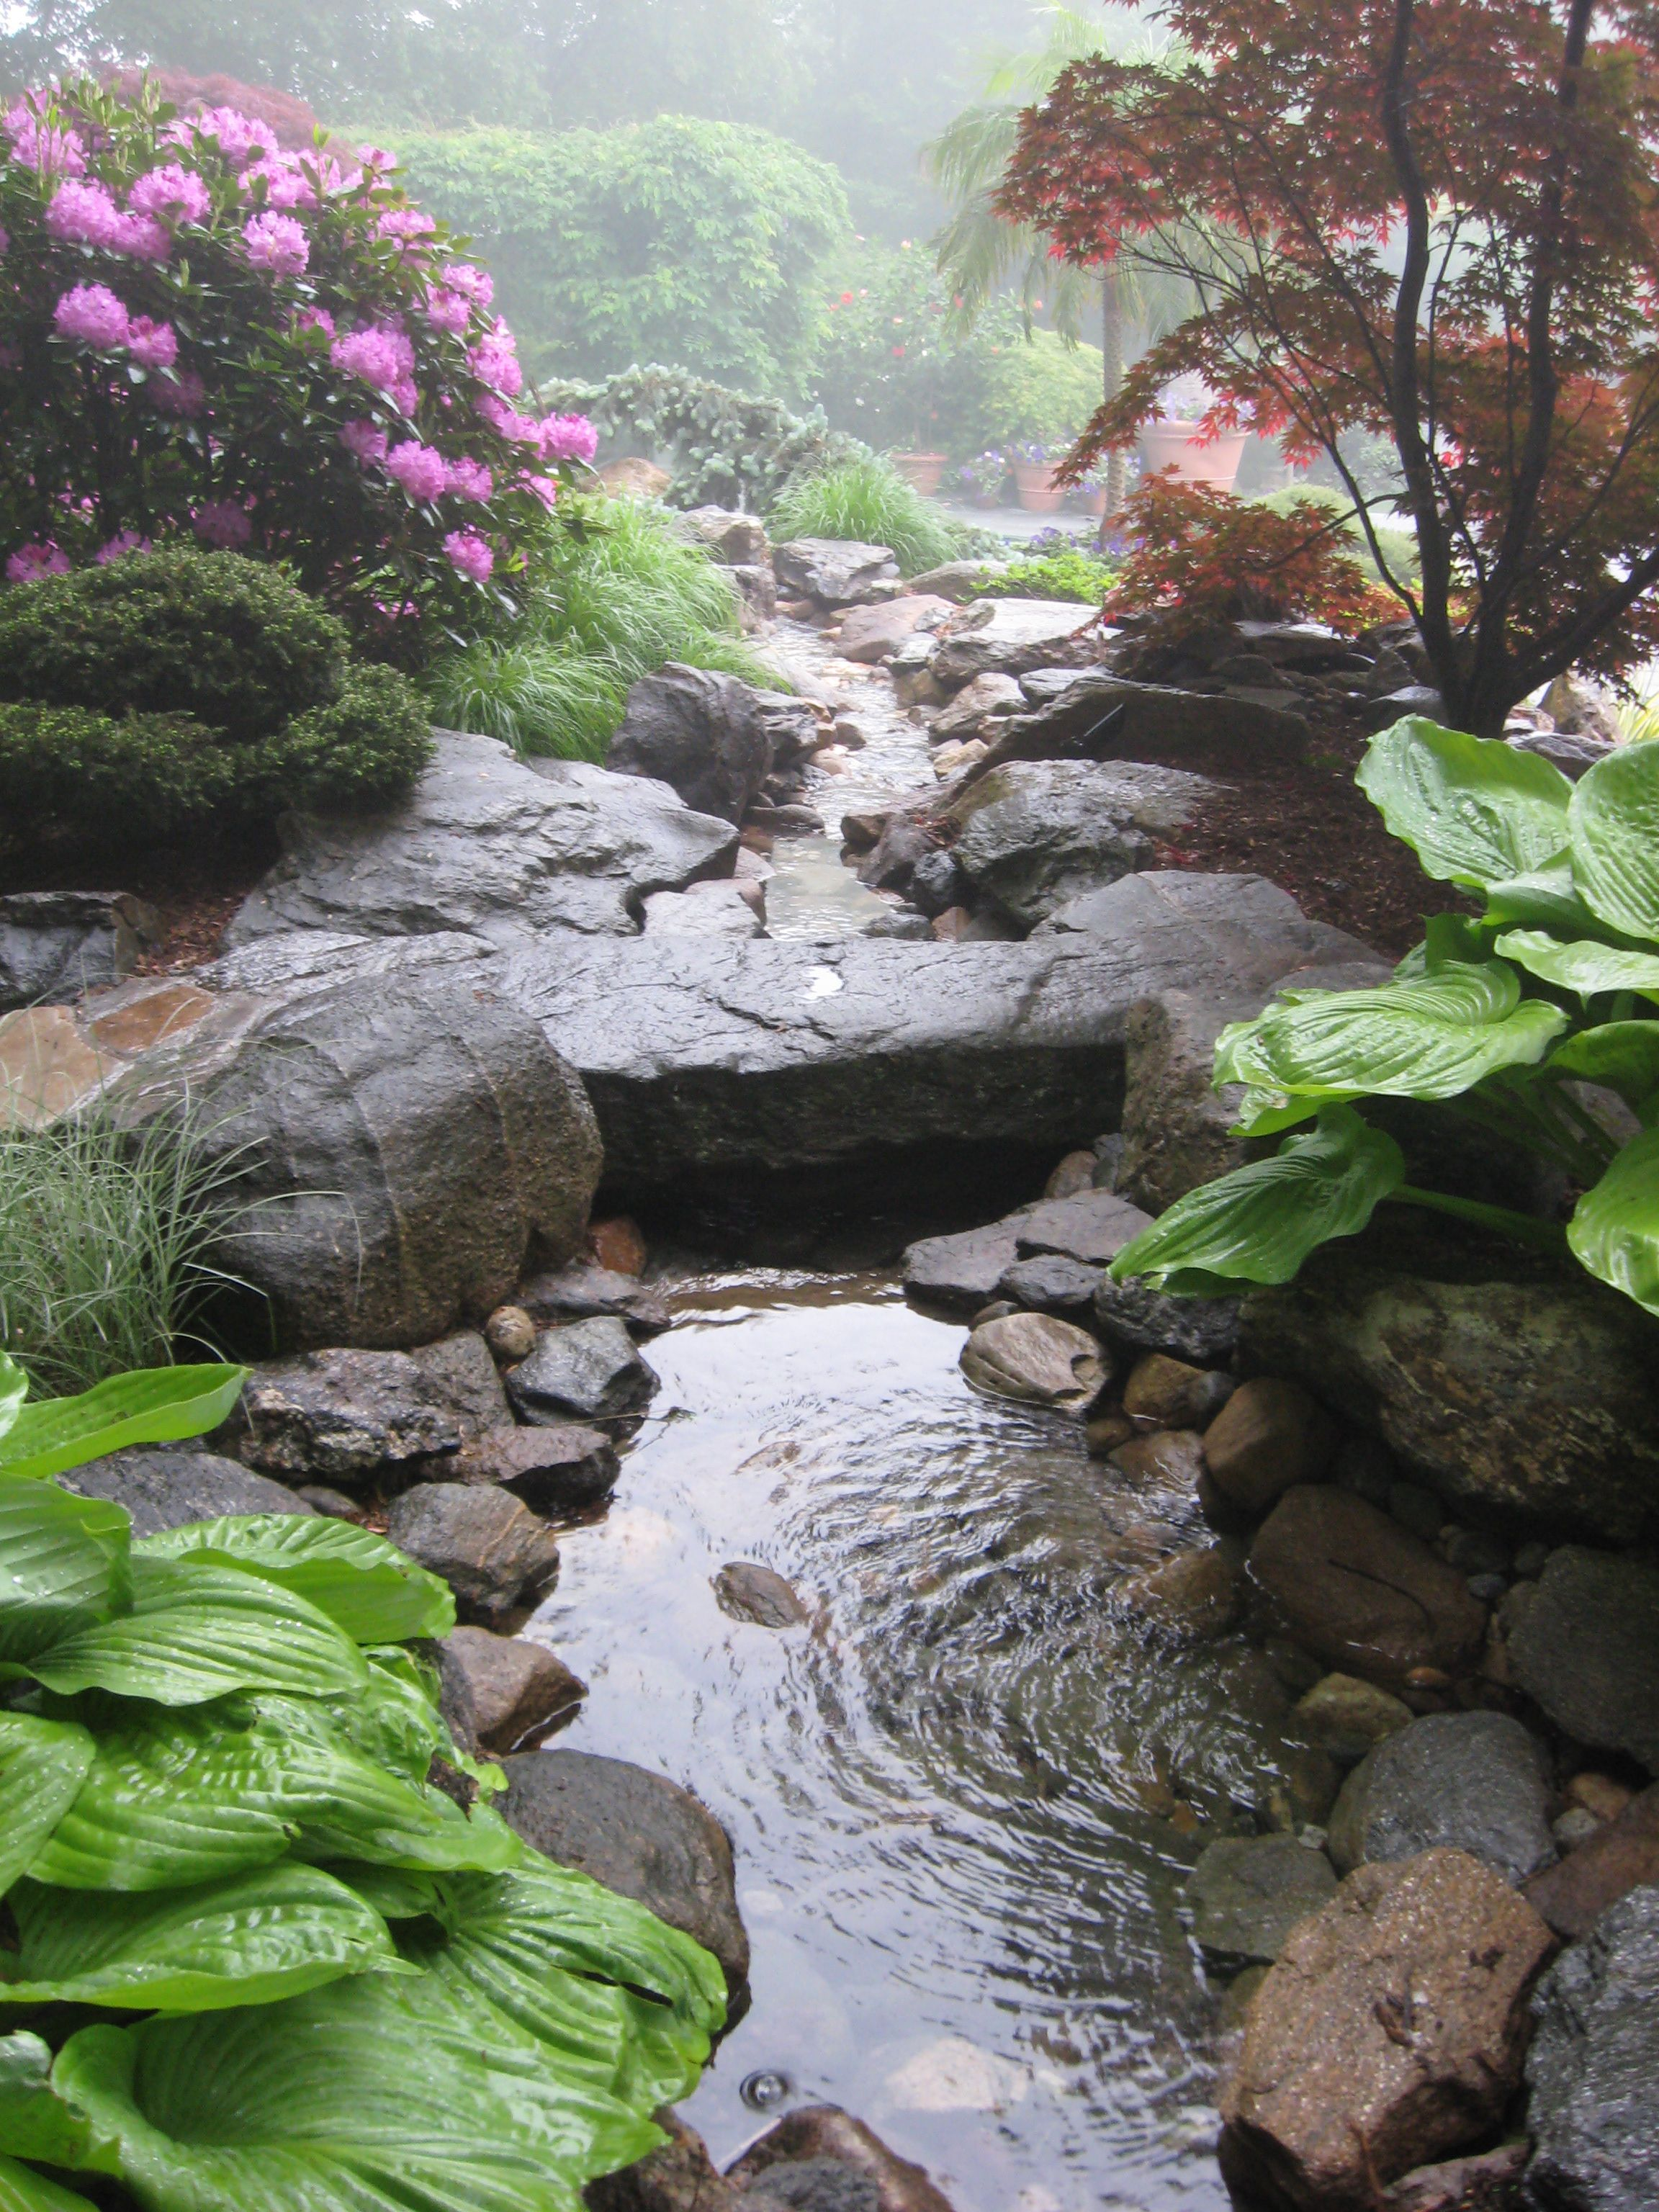 Backyard Waterfalls Water Garden Stream With Stone Bridge In A - garden pond designs waterfalls